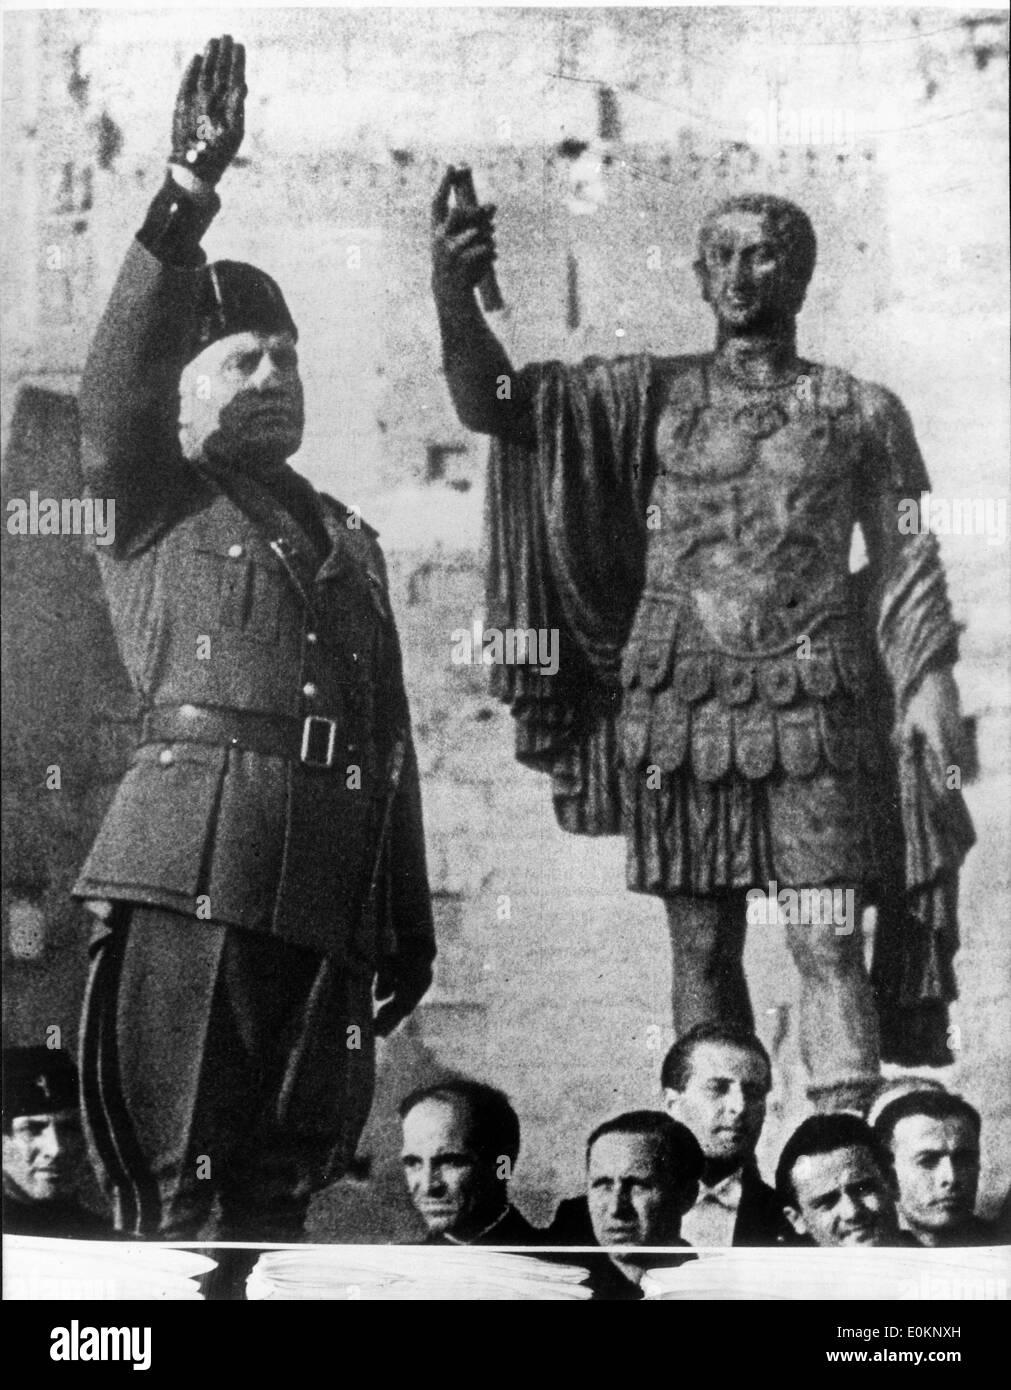 Dictator Benito Mussolini greeting civilians - Stock Image